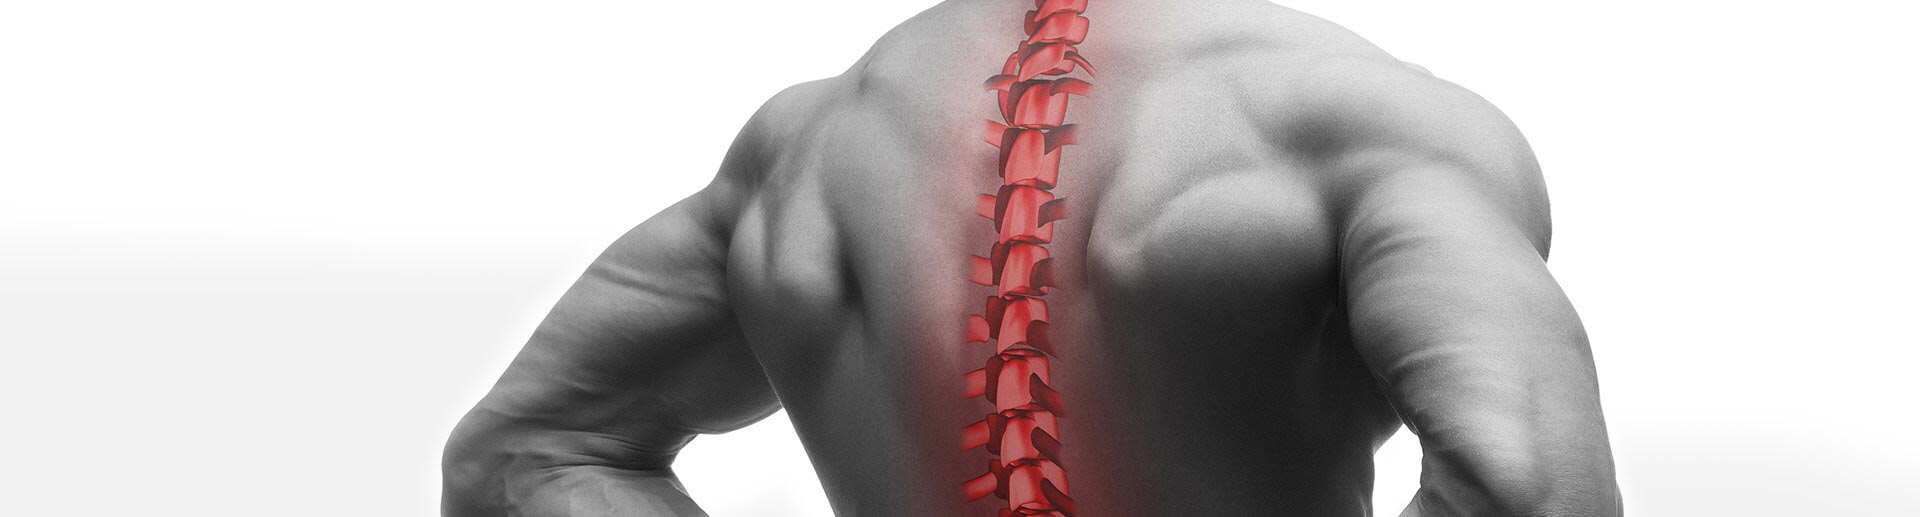 caring for your spine by using a chiropractor